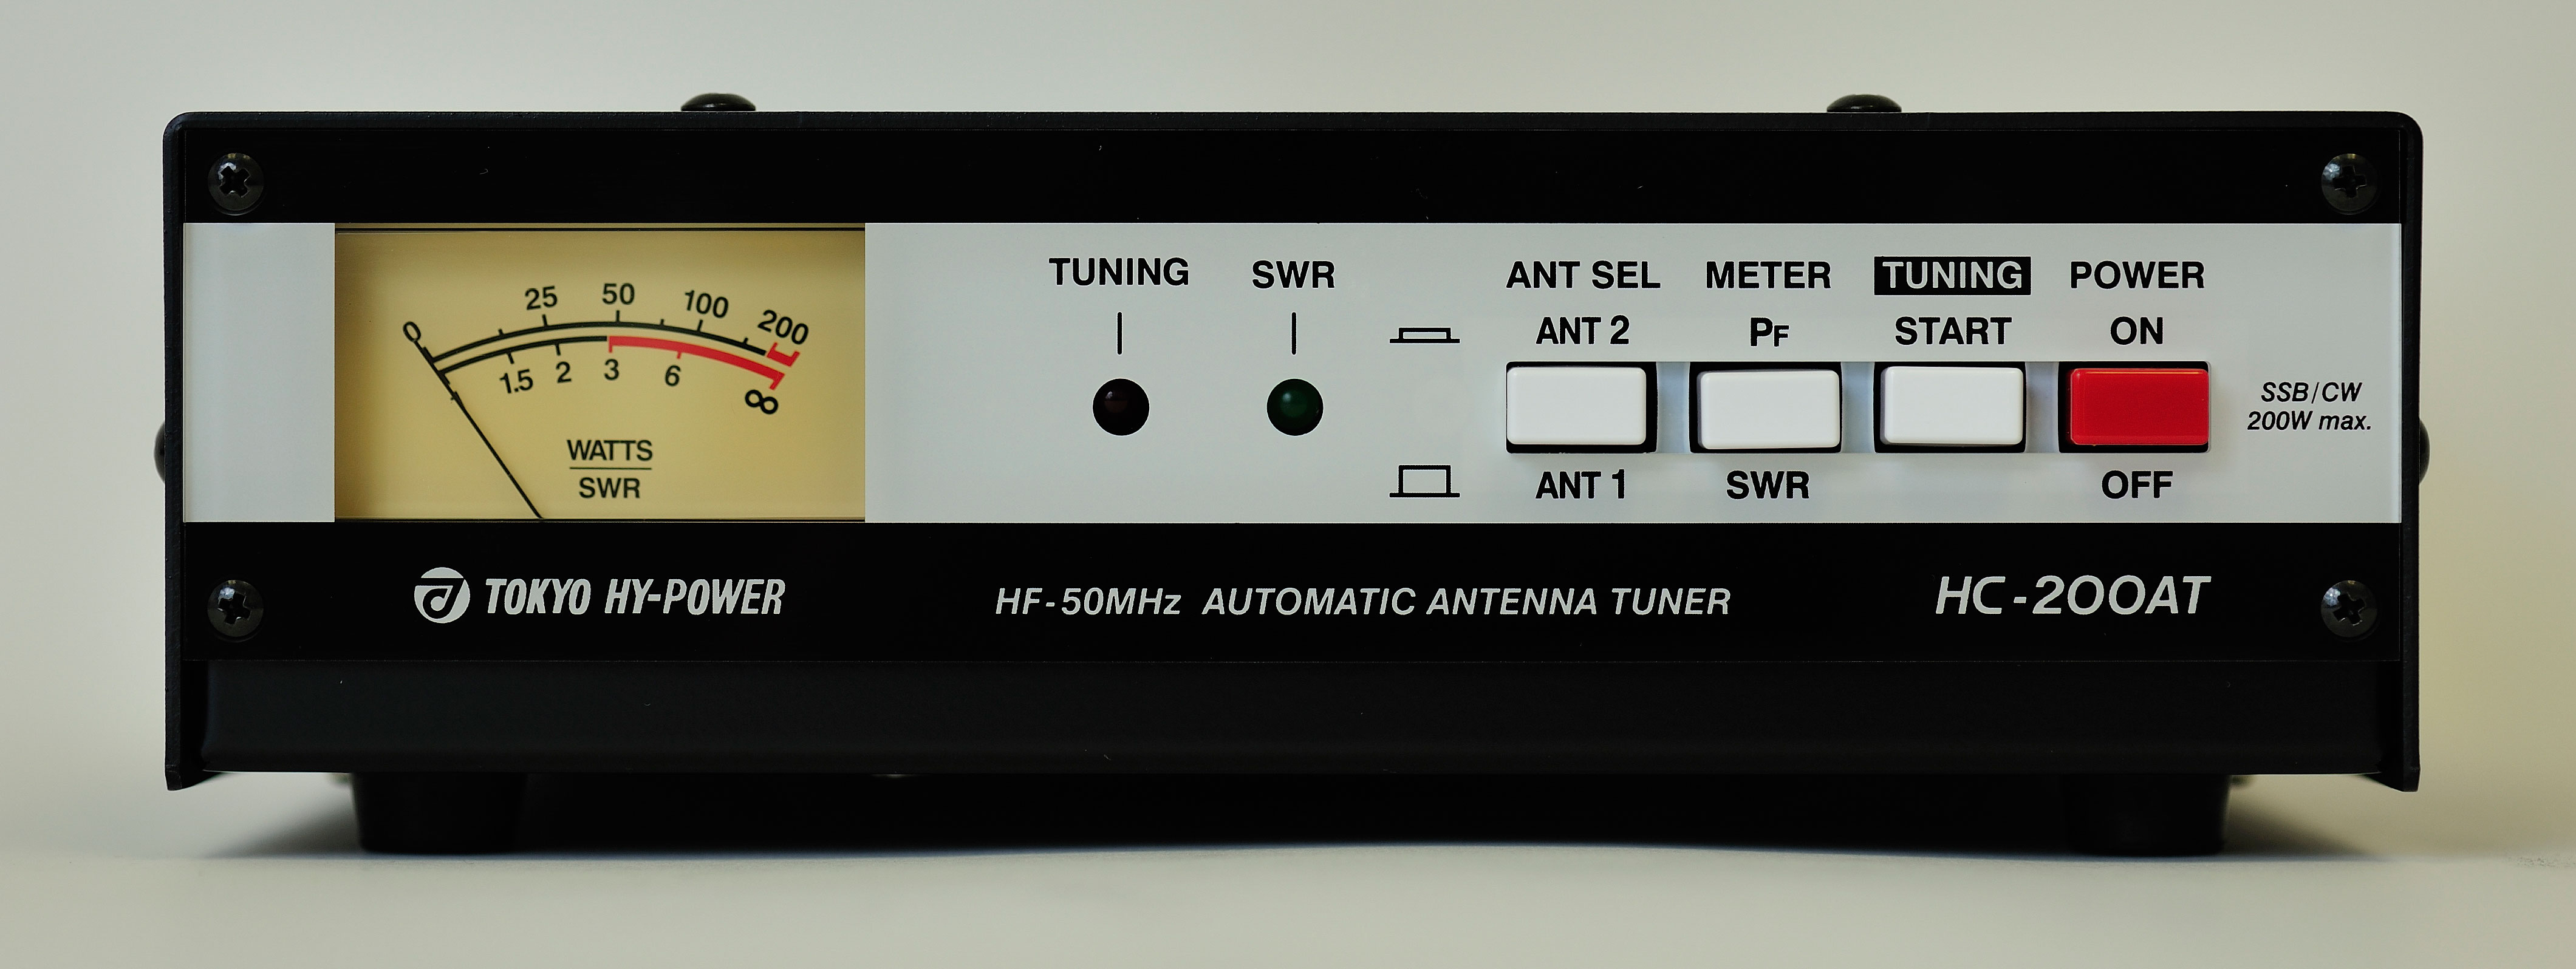 hc 200at 200w hf 50mhz auto antenna tuner radioworld. Black Bedroom Furniture Sets. Home Design Ideas